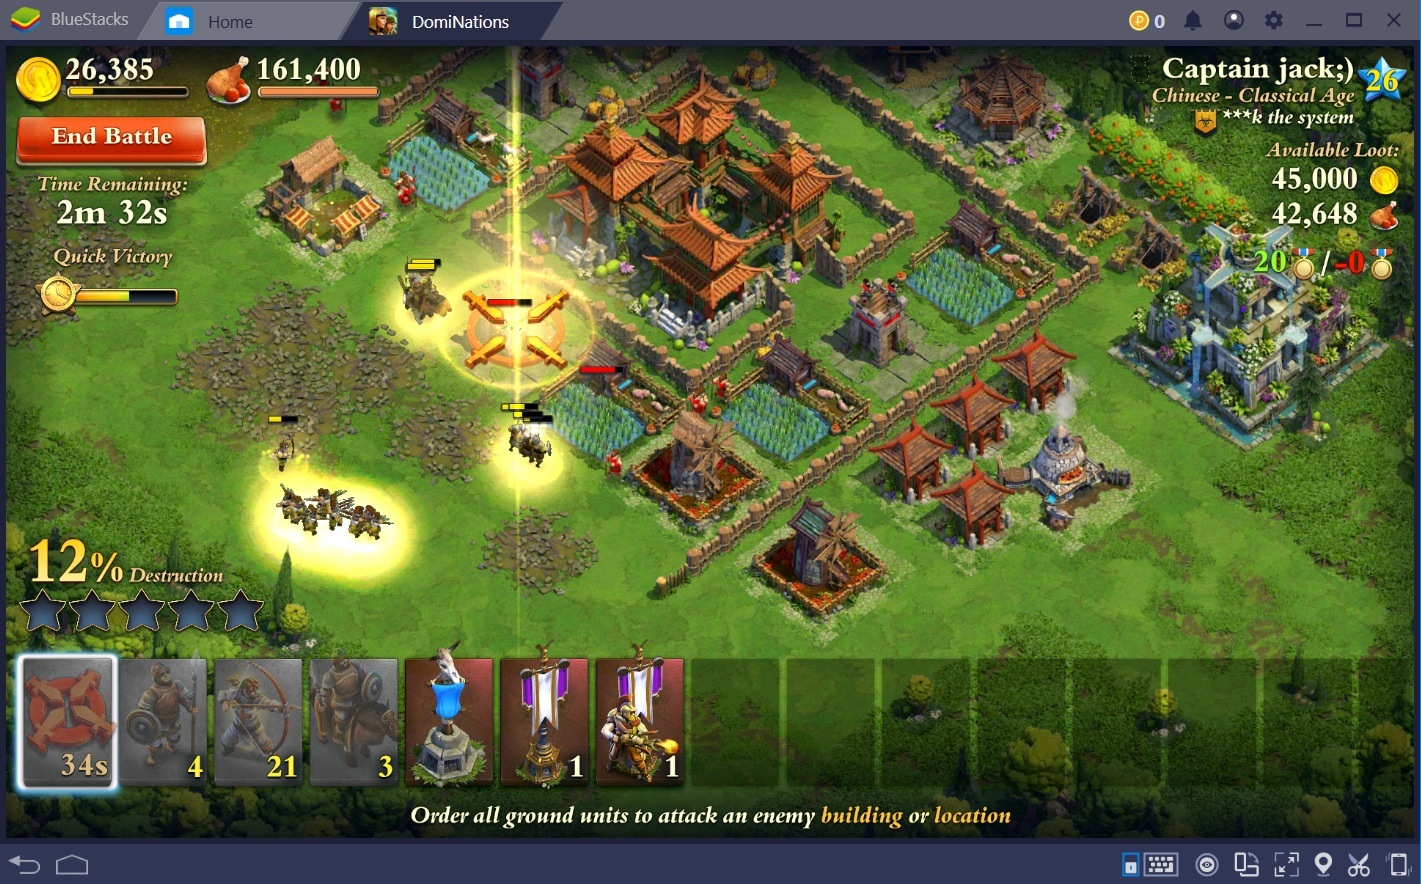 DomiNations: Guide to Perfect Base Defense